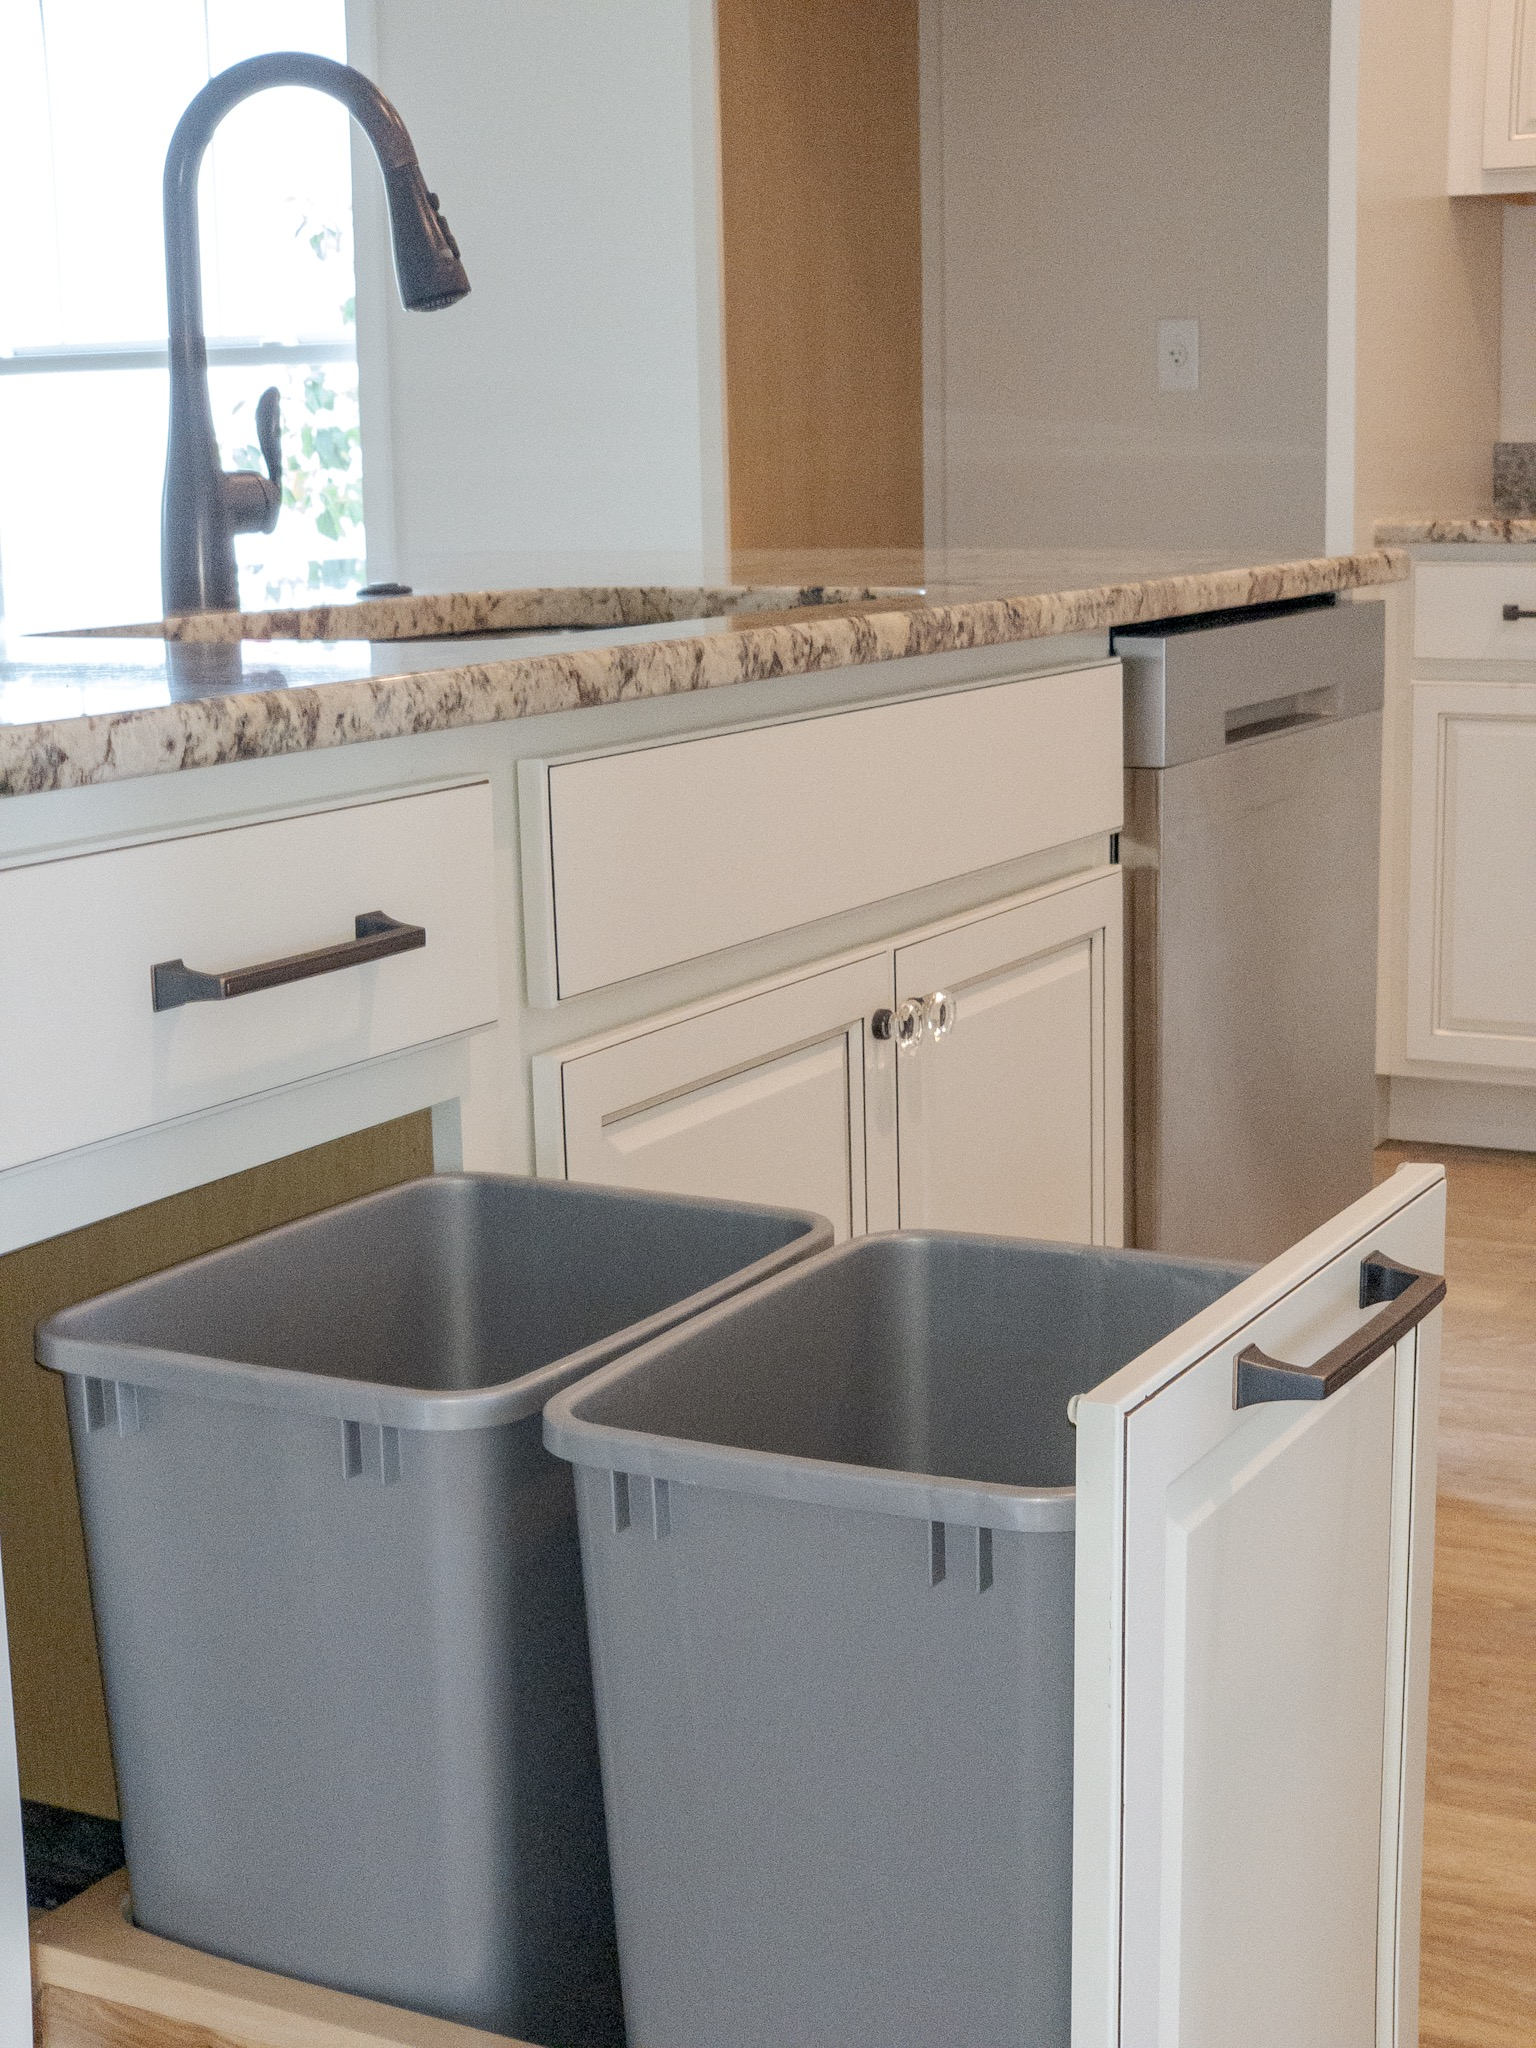 Kitchen Trash and Recycle Bins.jpg